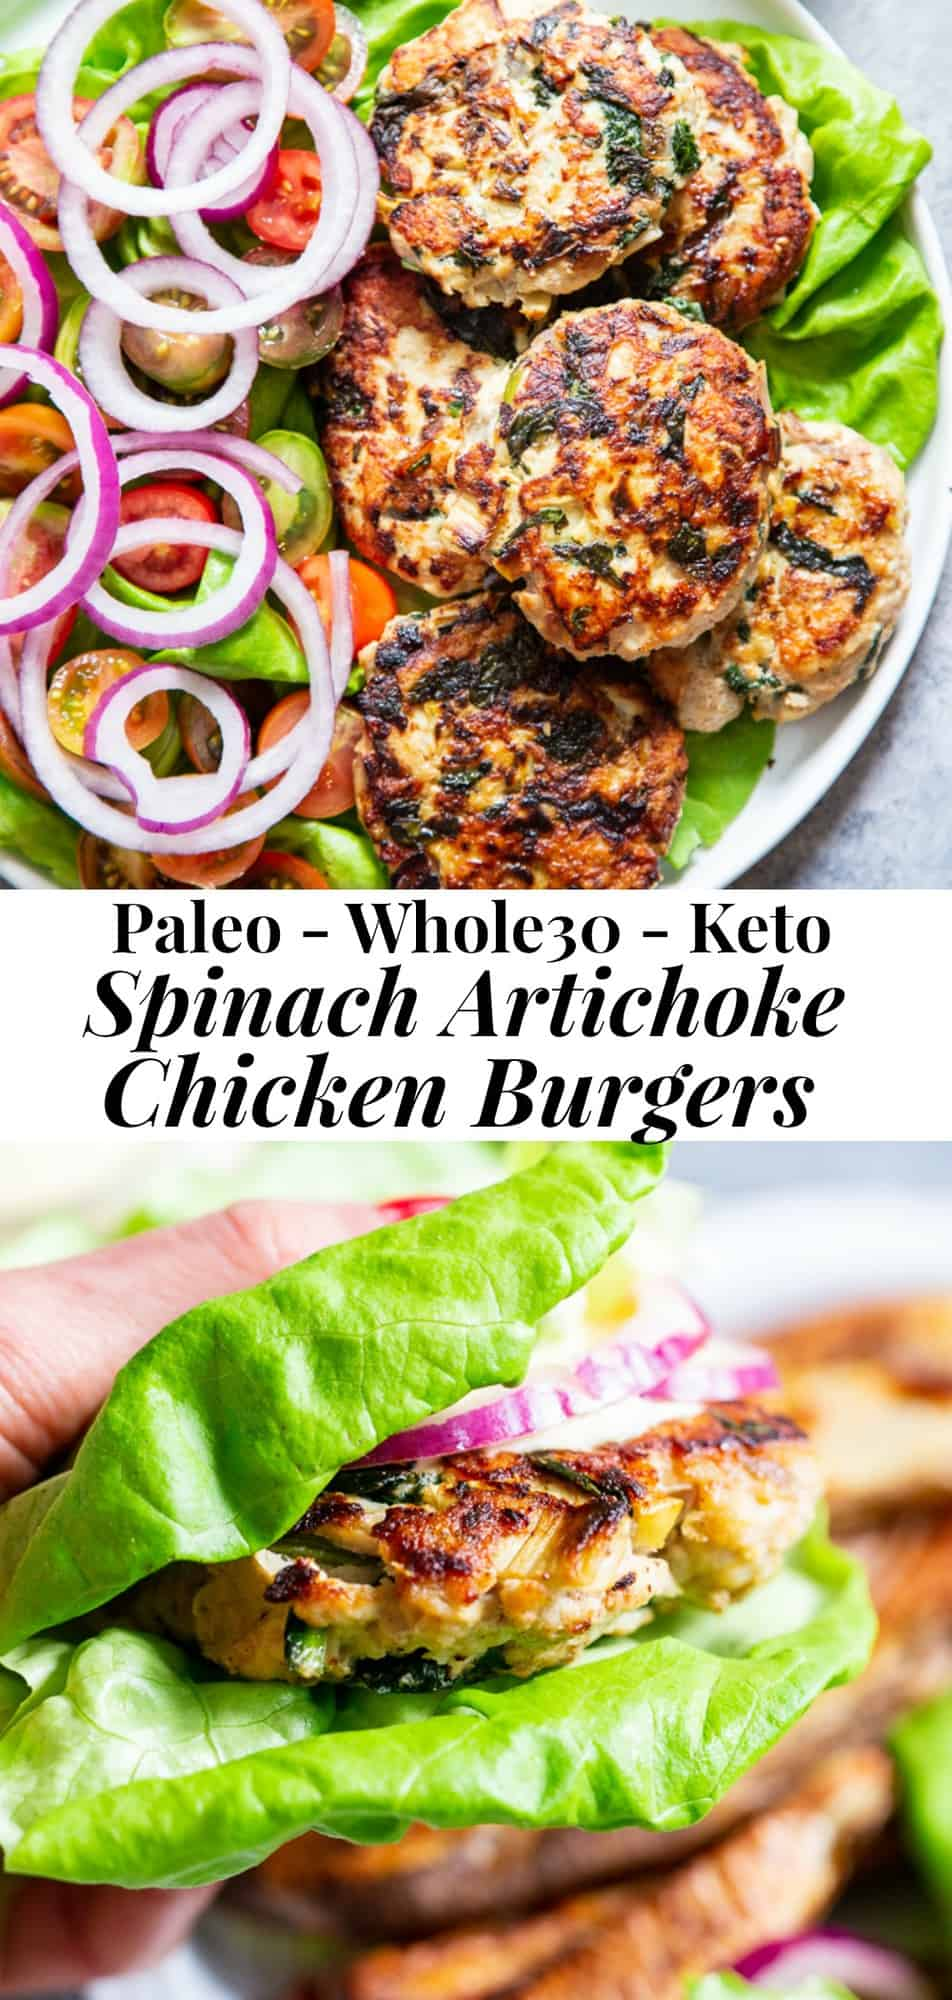 These chicken burgers are packed with veggies and tons of flavor! A savory spinach artichoke mixture is added to the burgers before they're grilled and topped with more goodies! Whole30, paleo, and keto friendly. A healthy way to break out of your burger rut and perfect to make ahead and freeze for meal prep #keto #paleo #whole30